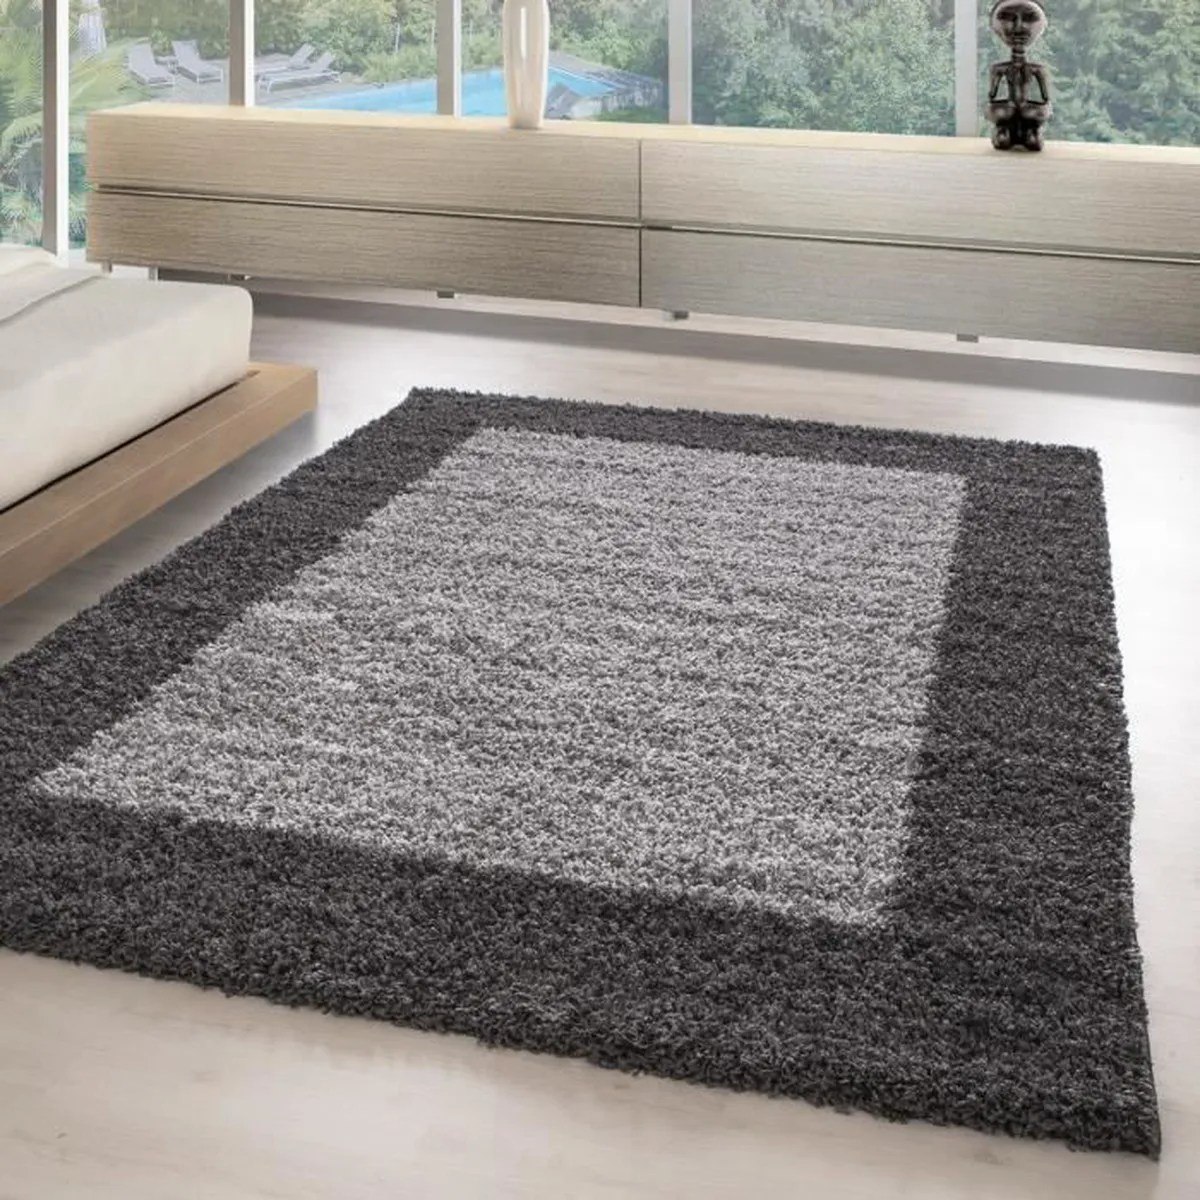 Nettoyage Tapis Shaggy Tapis Velours Conforama Awesome Latest Tapis Pas Cher